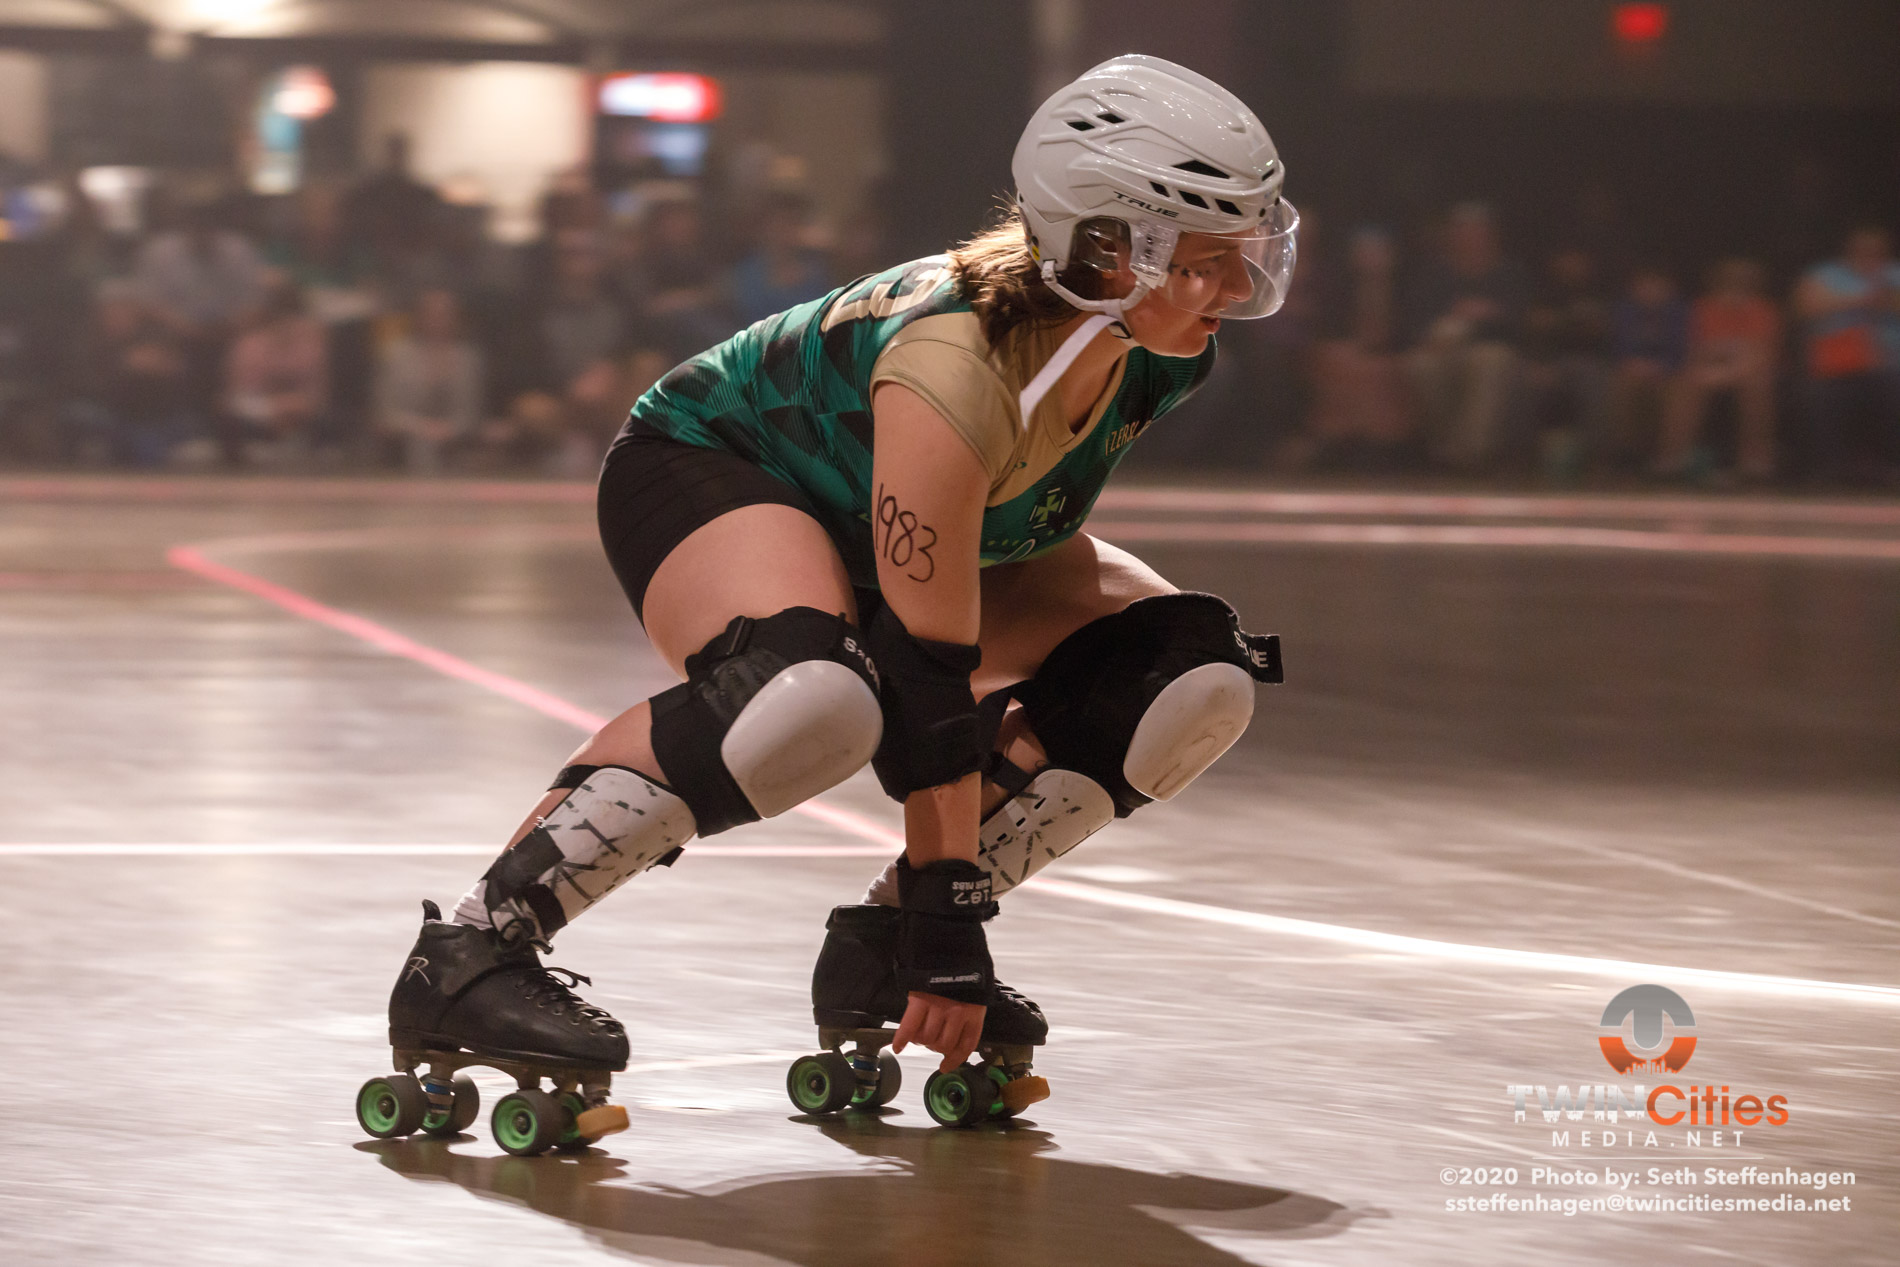 February 15, 2020 - Saint Paul, Minnesota, United States - Scenes from the Minnesota Roller Derby  home team semi-finals at the Roy Wilkins Auditorium between Garda Belts and Rockits.  (Photo by Seth Steffenhagen/Steffenhagen Photography)